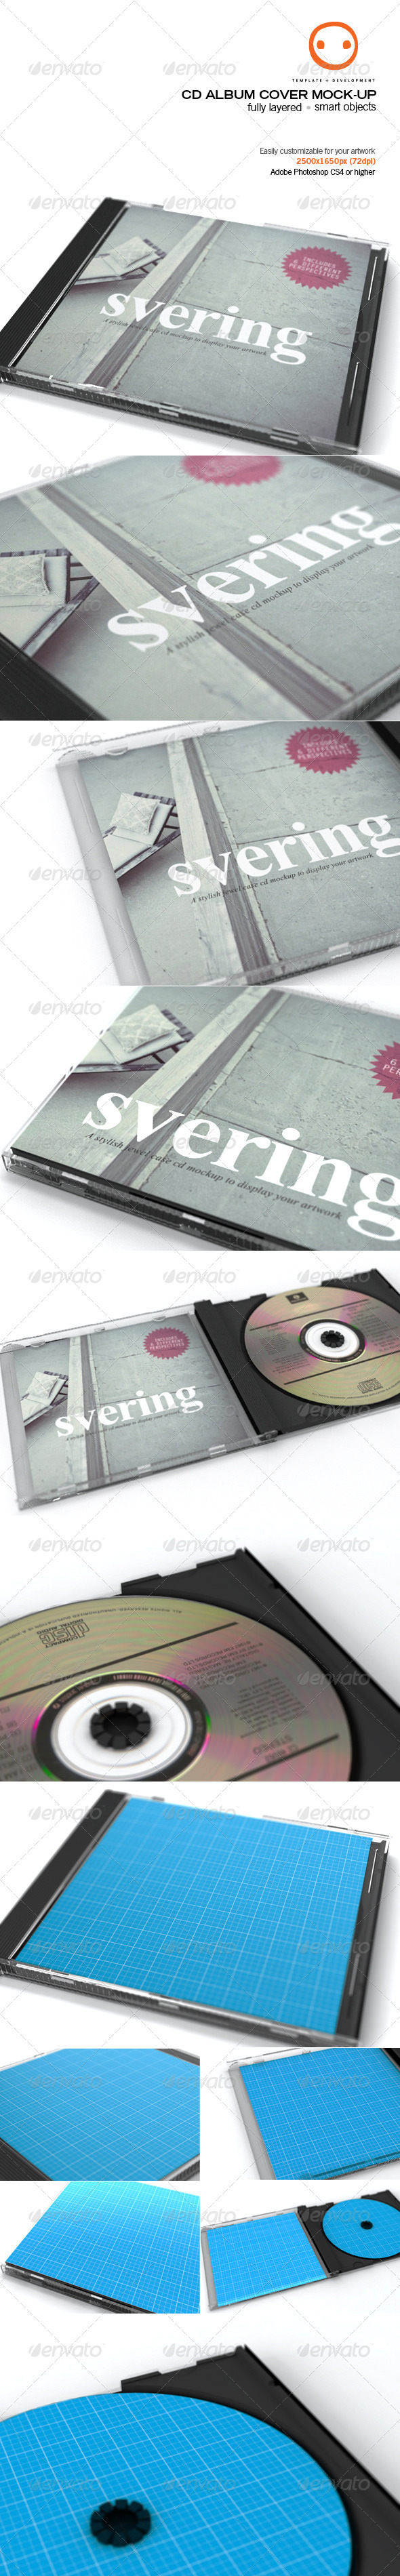 CD Album Cover Mock-up - Discs Packaging